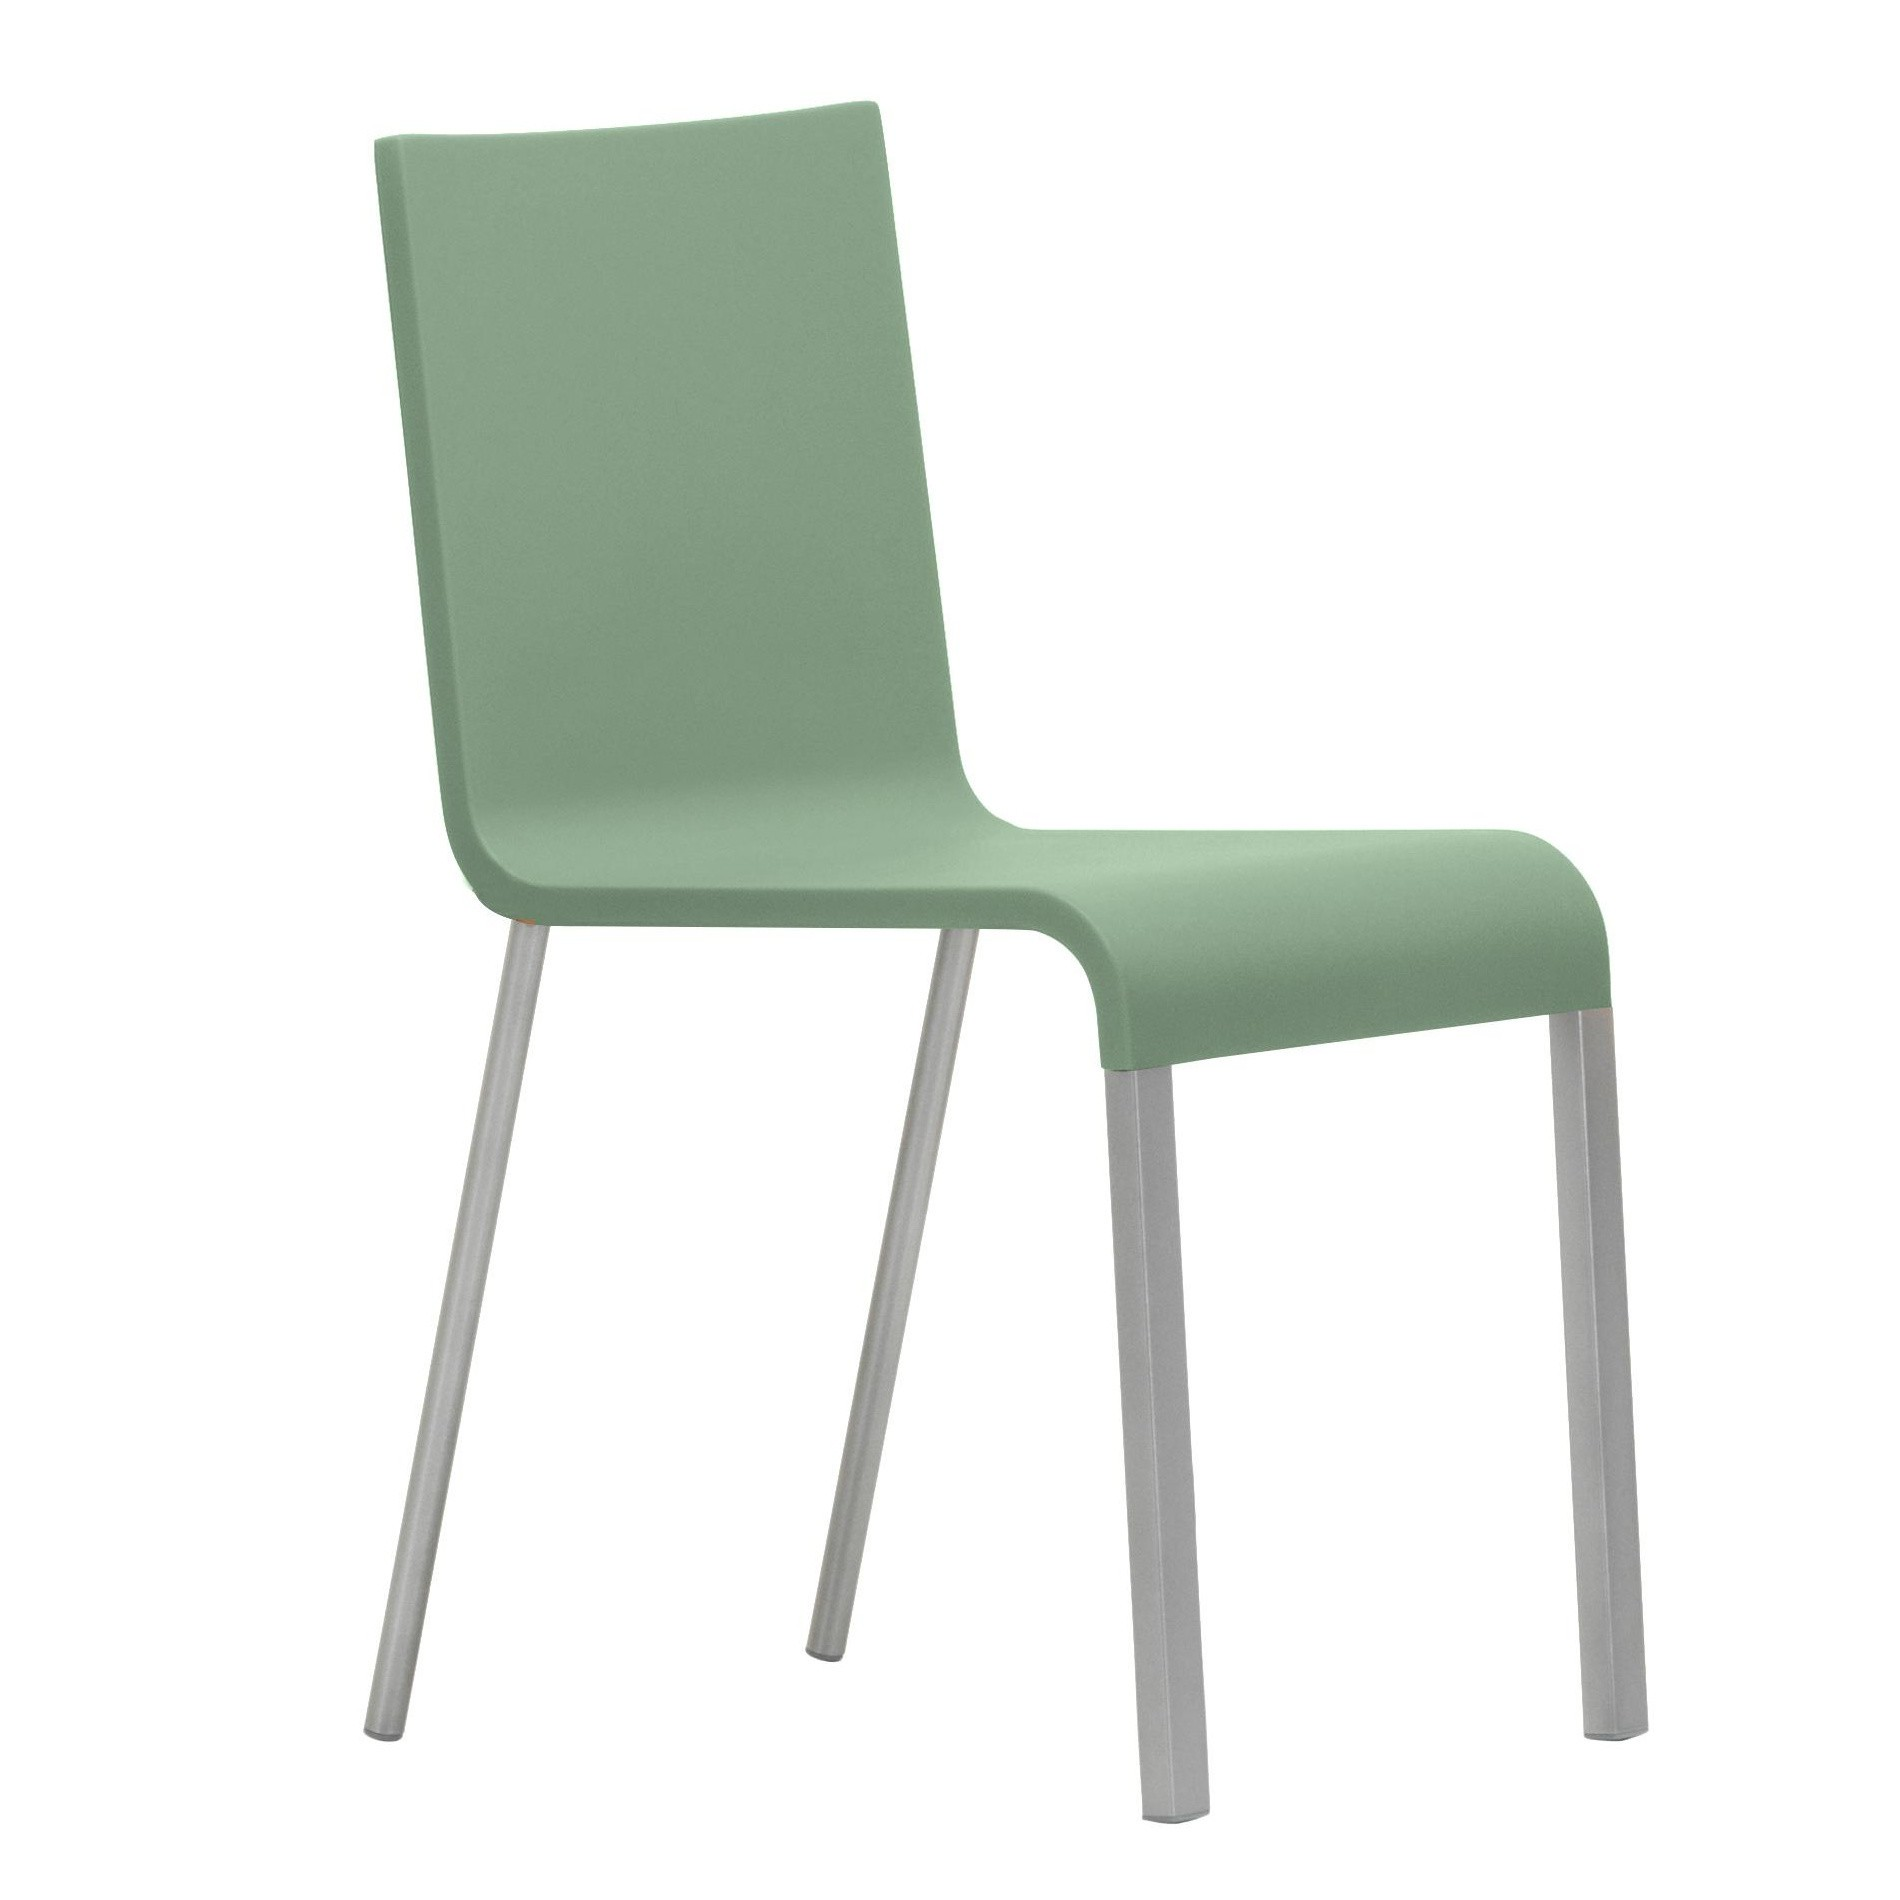 Swell 03 Chair Not Stackable Silver Base Bralicious Painted Fabric Chair Ideas Braliciousco